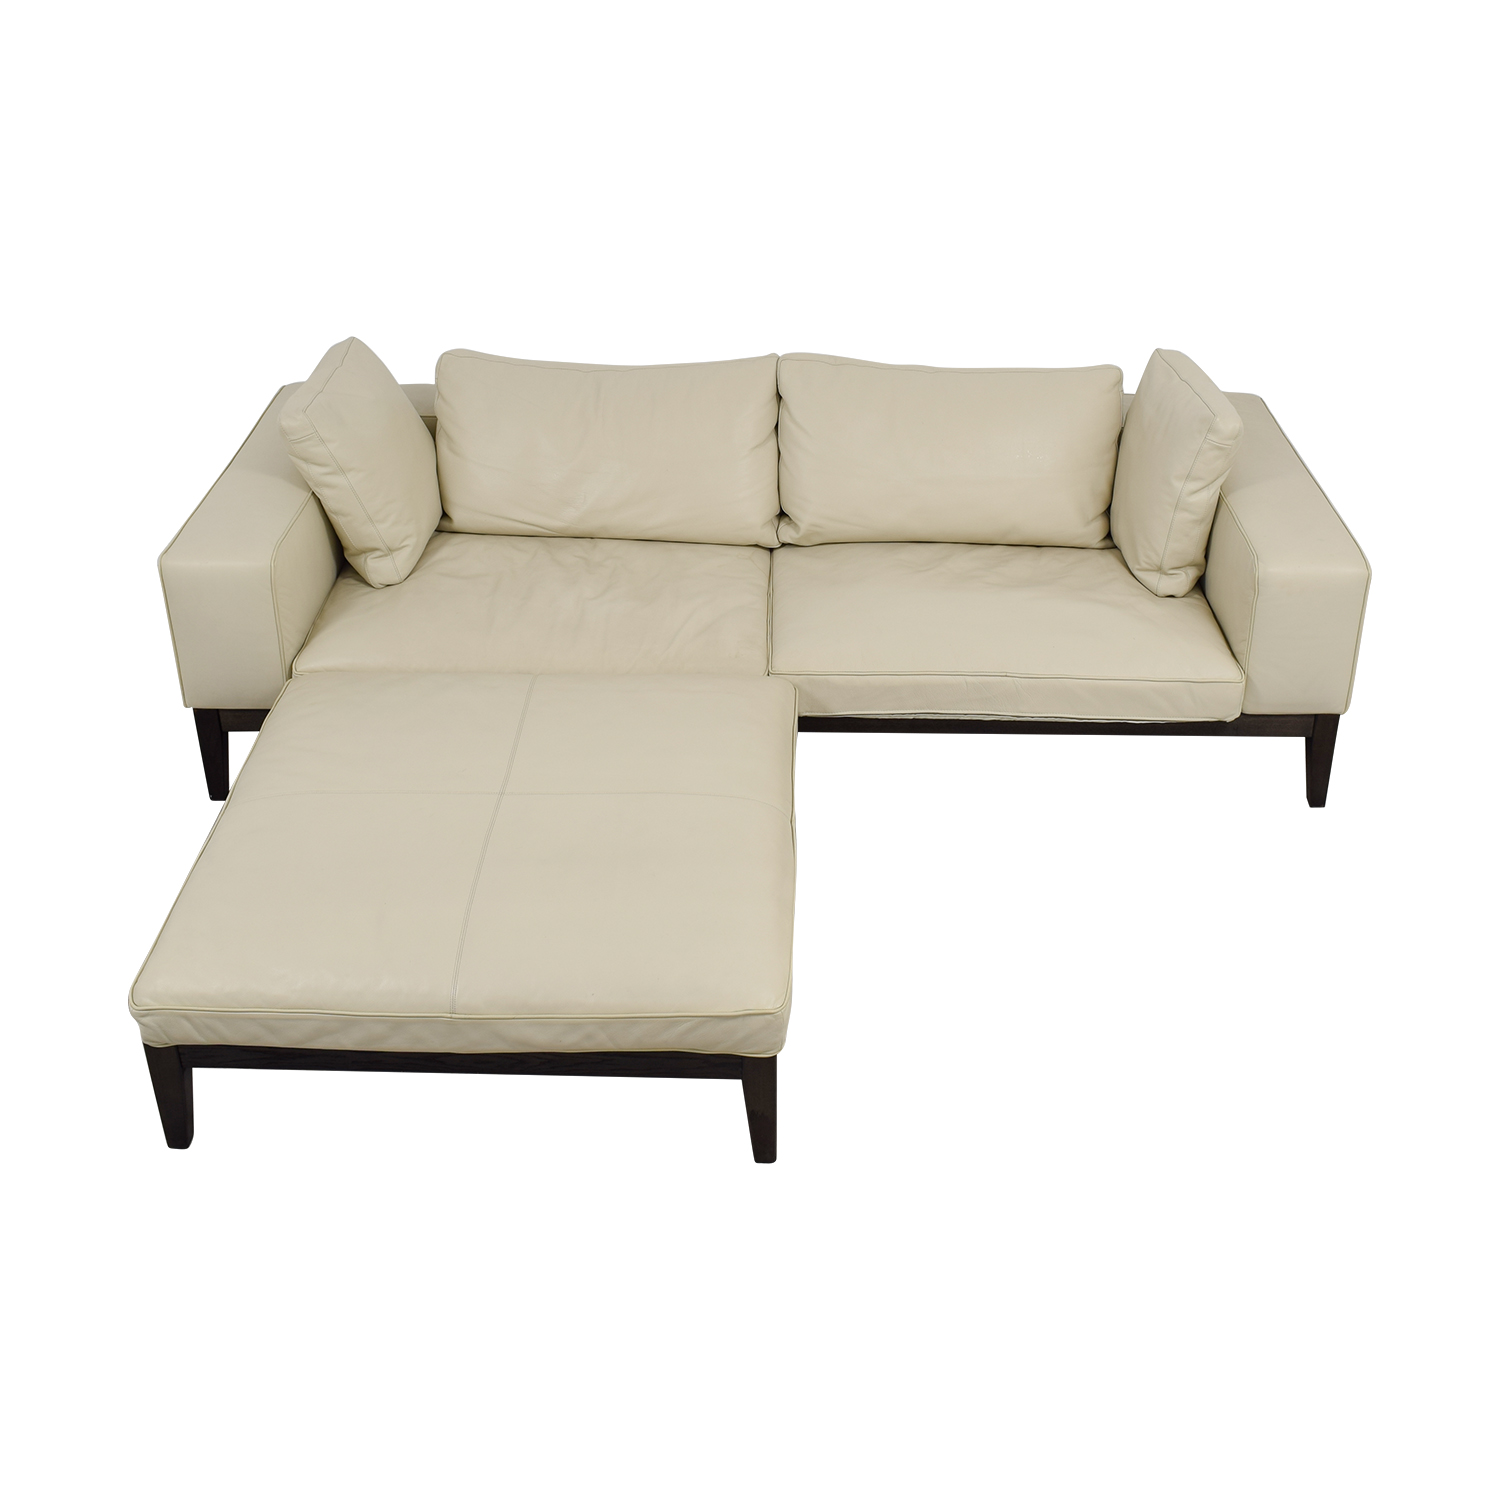 Tree Tree Contemporary Italian Off White Leather Couch with Large Chaise Ottoman dimensions